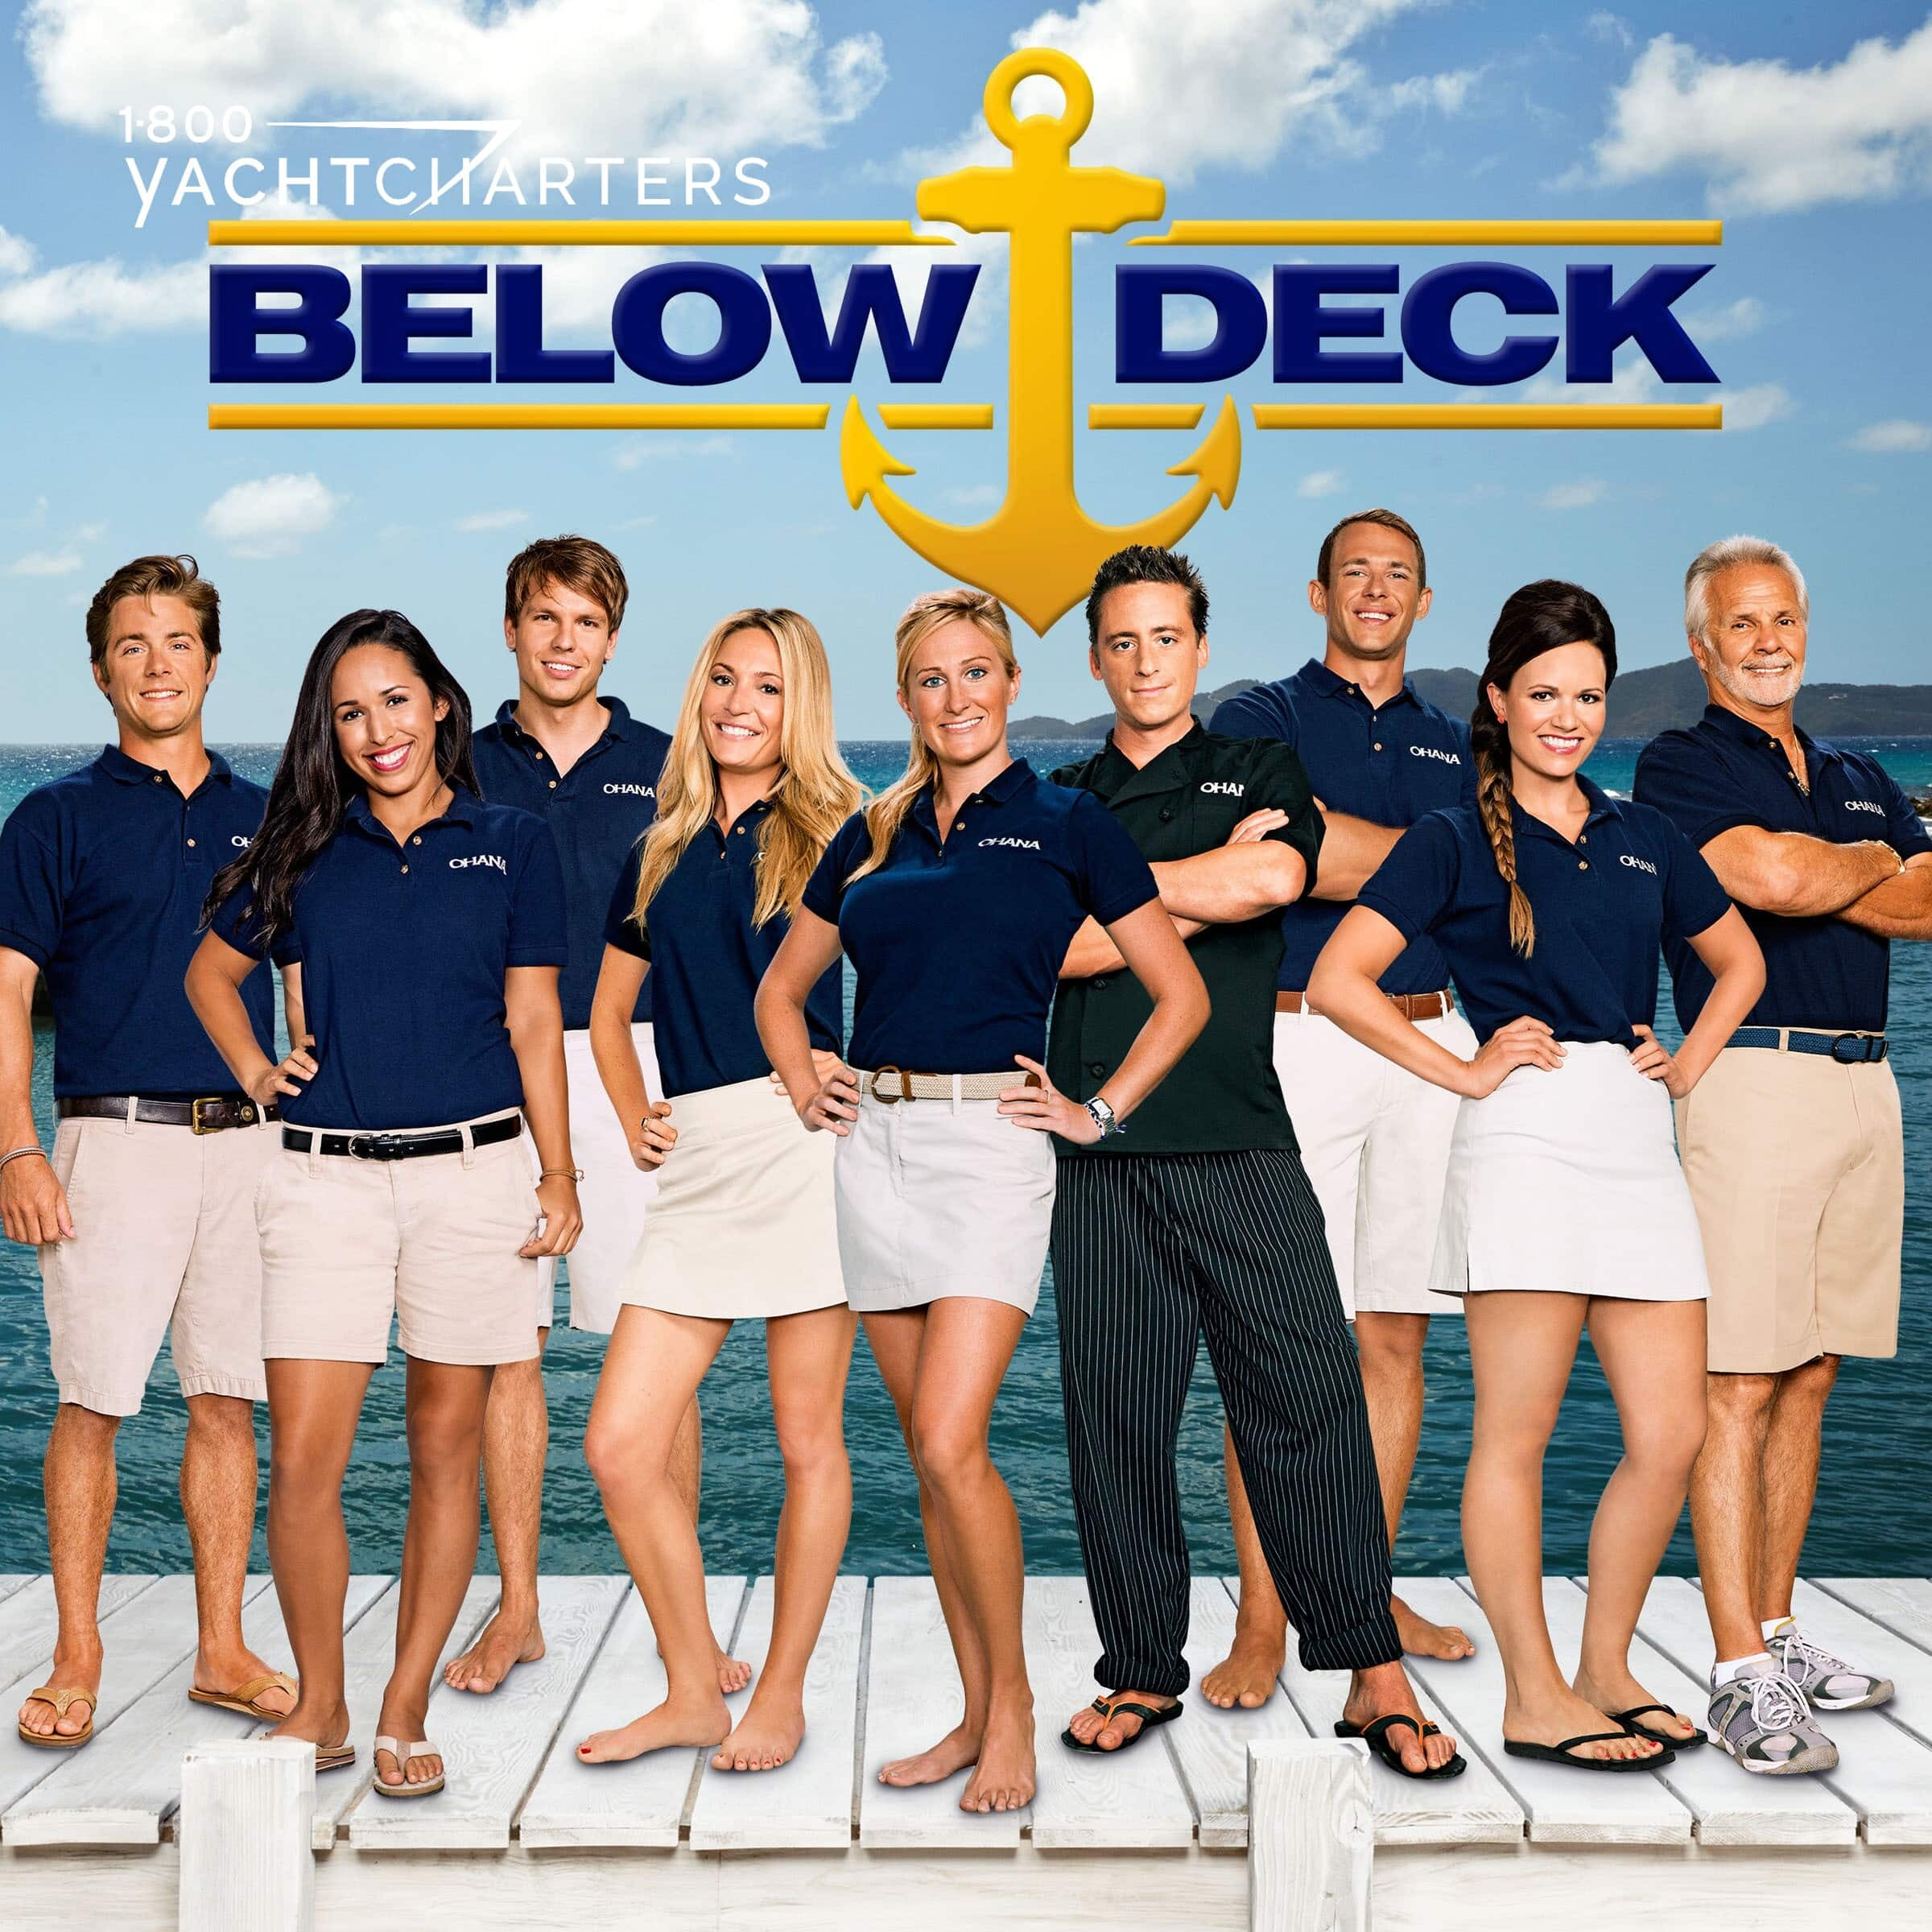 Photograph of 9 members of the Below Deck television series. Everyone is standing with their hands on their hips. All are white or khaki shorts or skirts and navy blue shirts. The chef in the photo is wearing all black. The words, Below Deck, with a yellow anchor (the Below Deck logo) is above the crew members. The background of the photo is blue sky and white puffy clouds